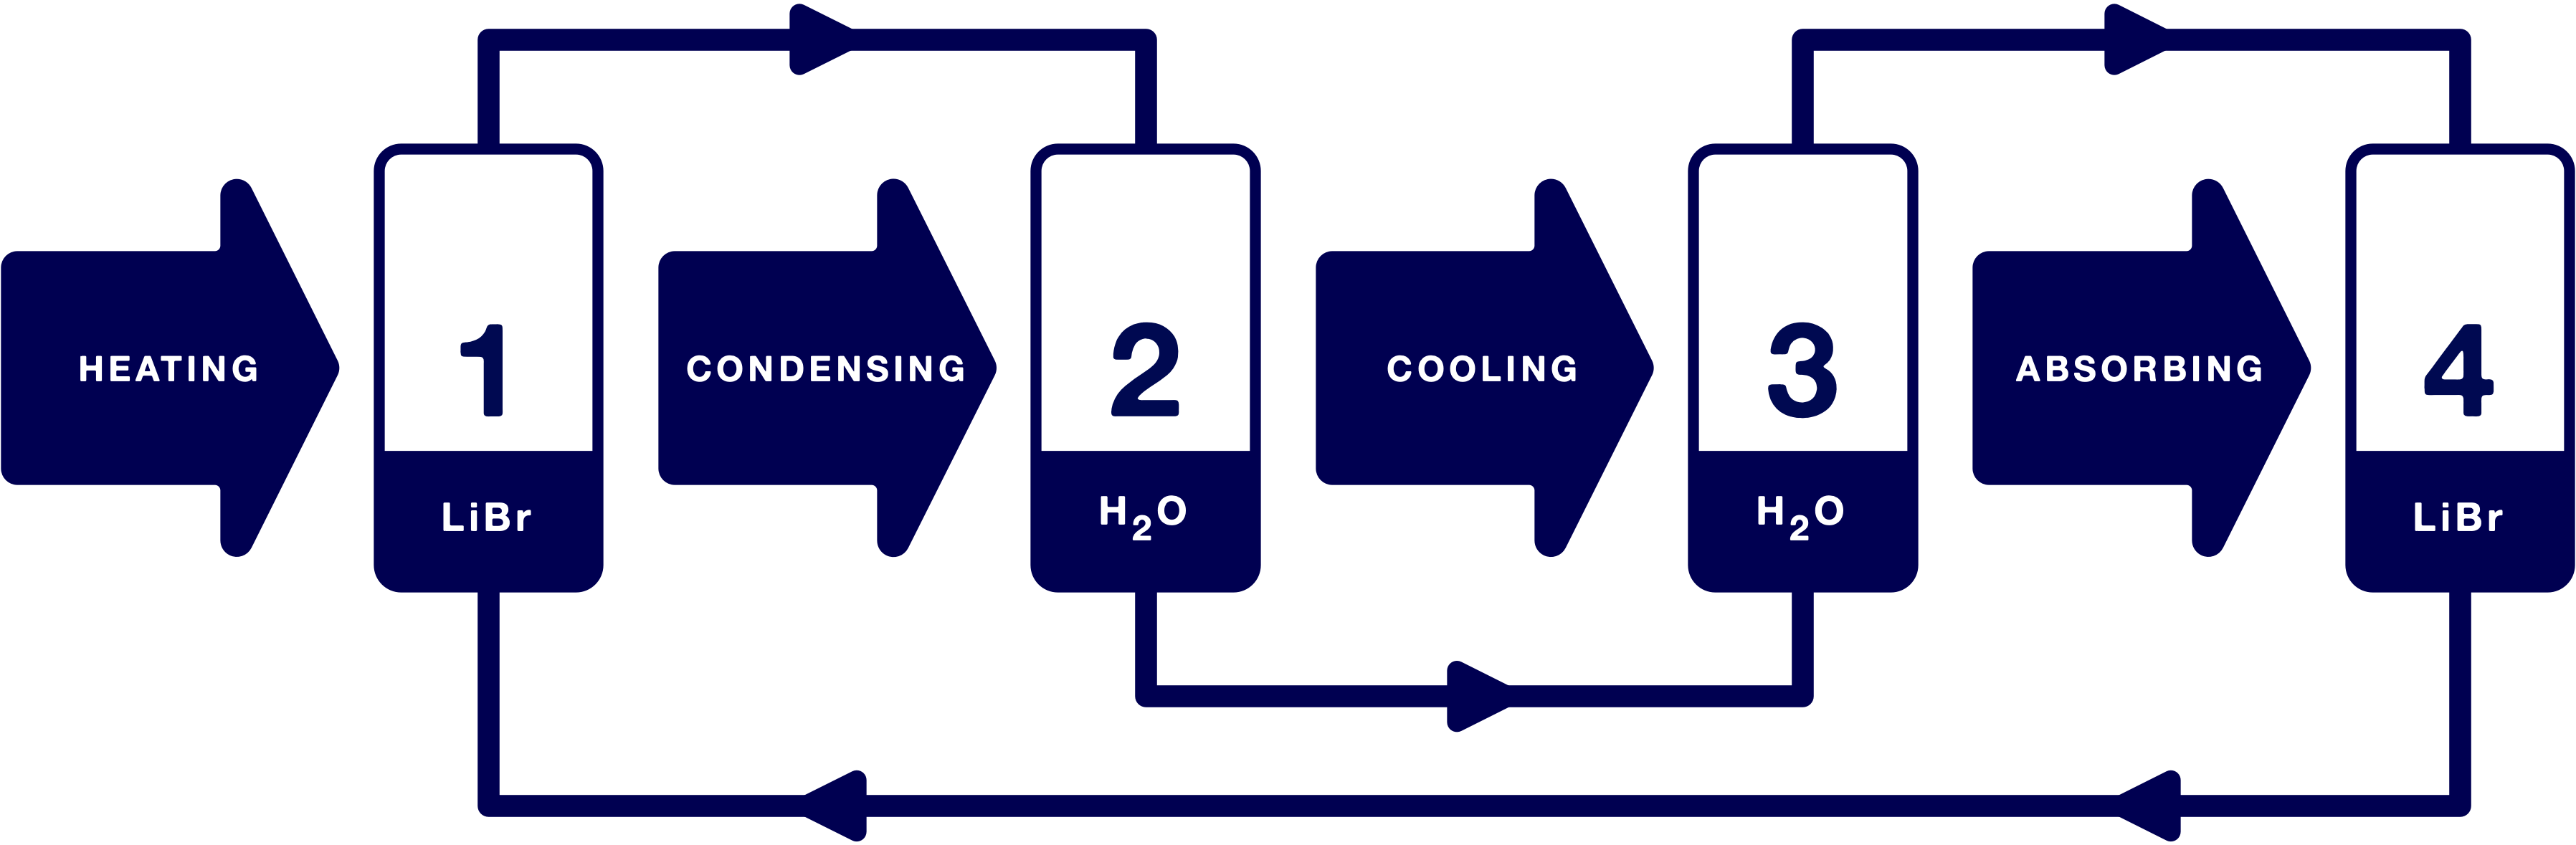 Description of the lithium bromide cooling process